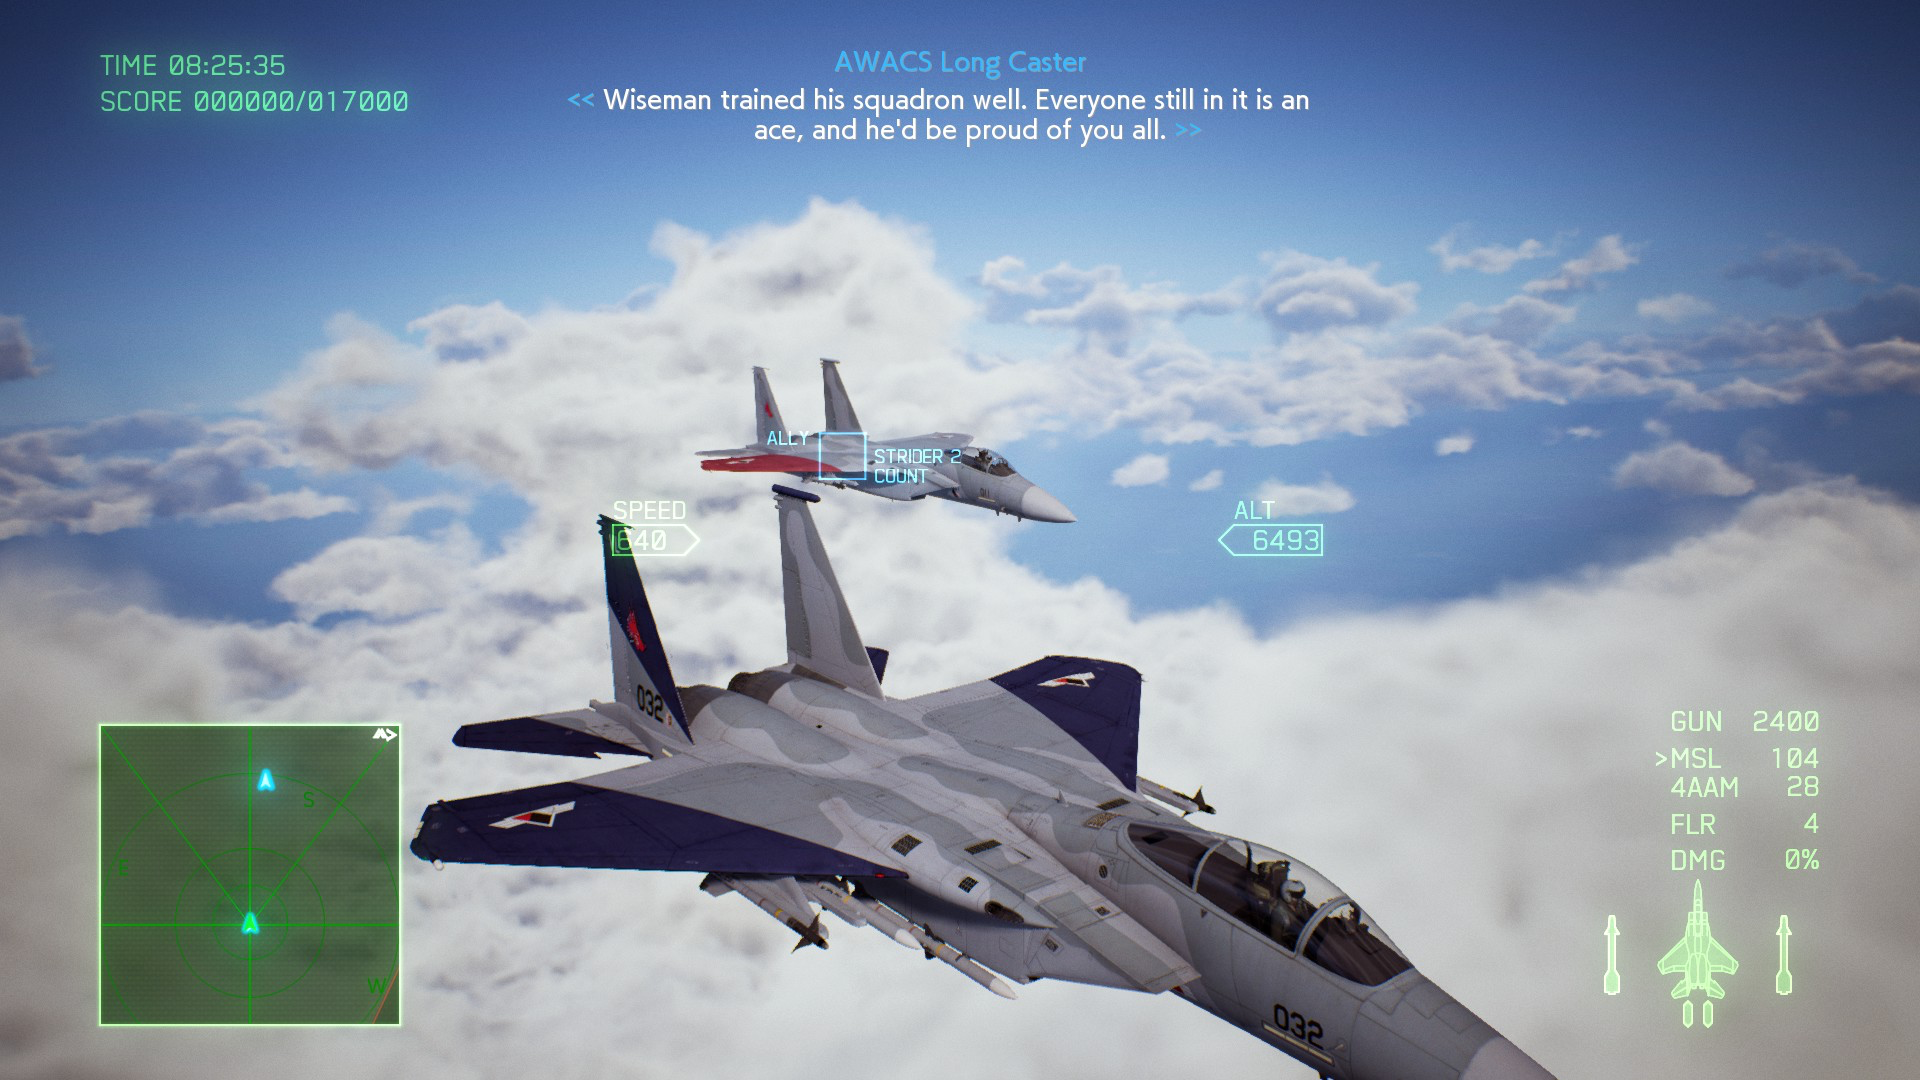 Only modifying the player's aircraft is insufficient. Right, buddy?